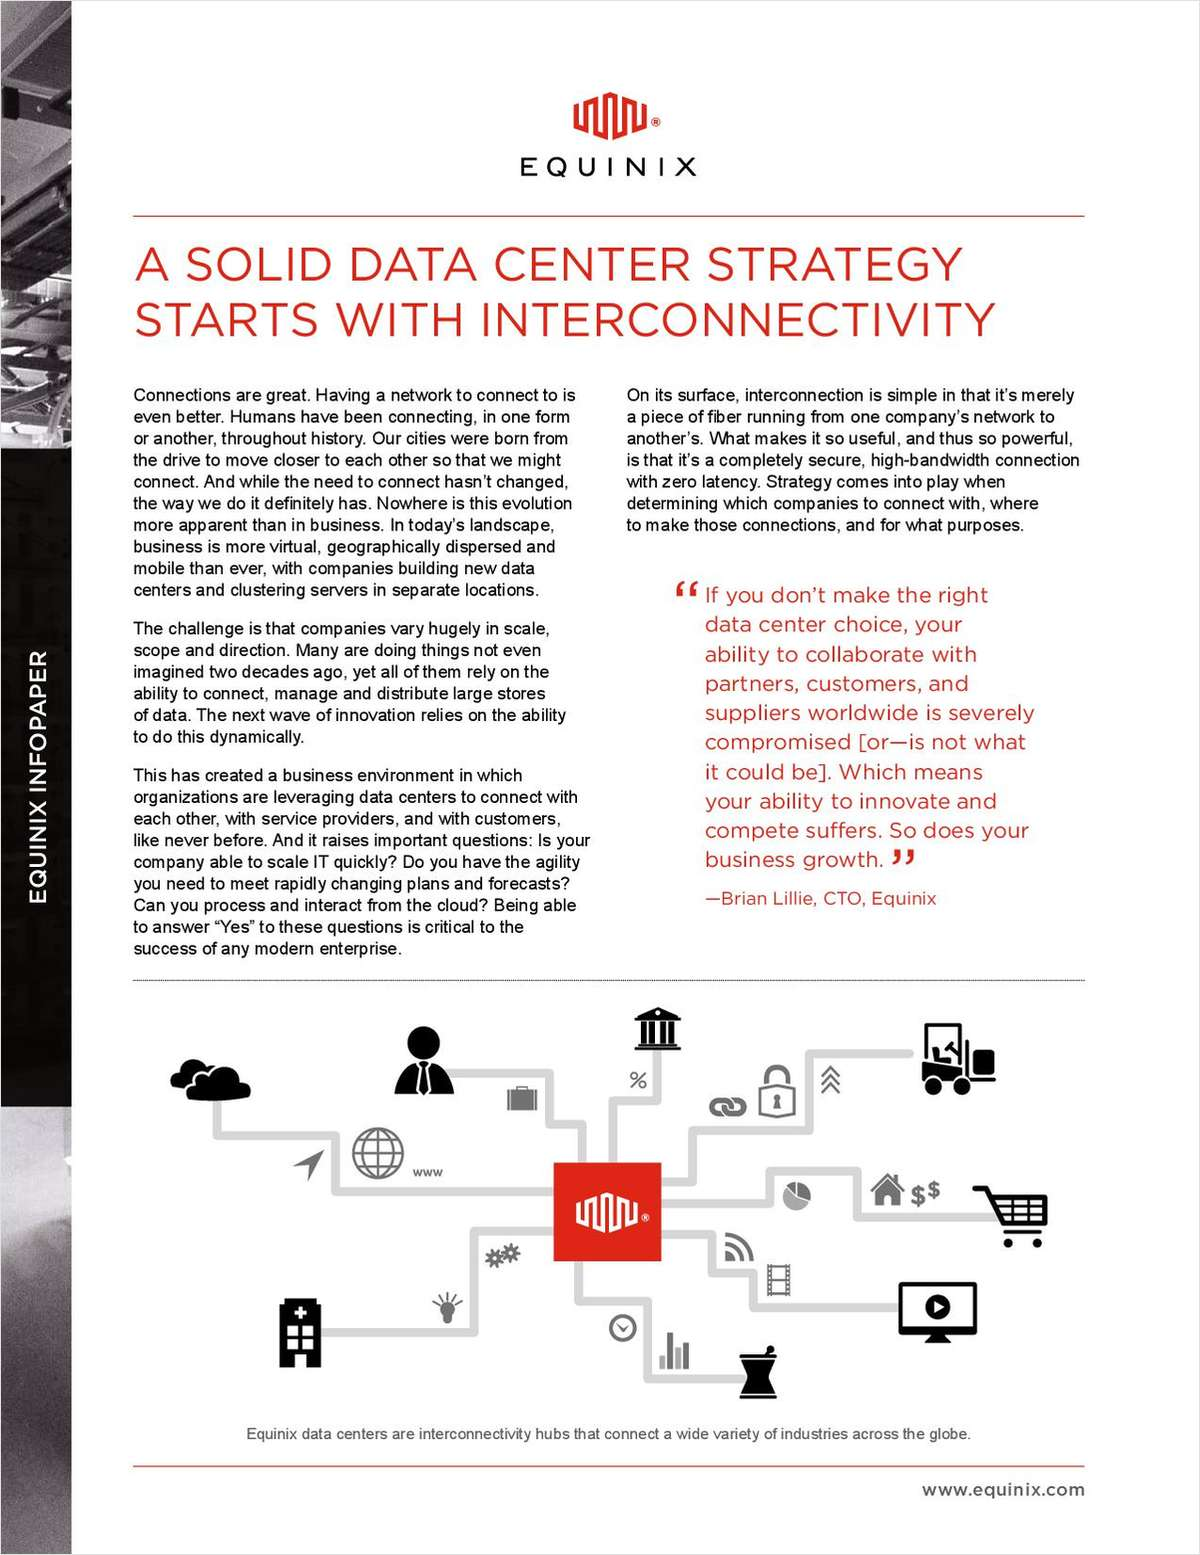 A Solid Data Center Strategy Starts With Interconnectivity